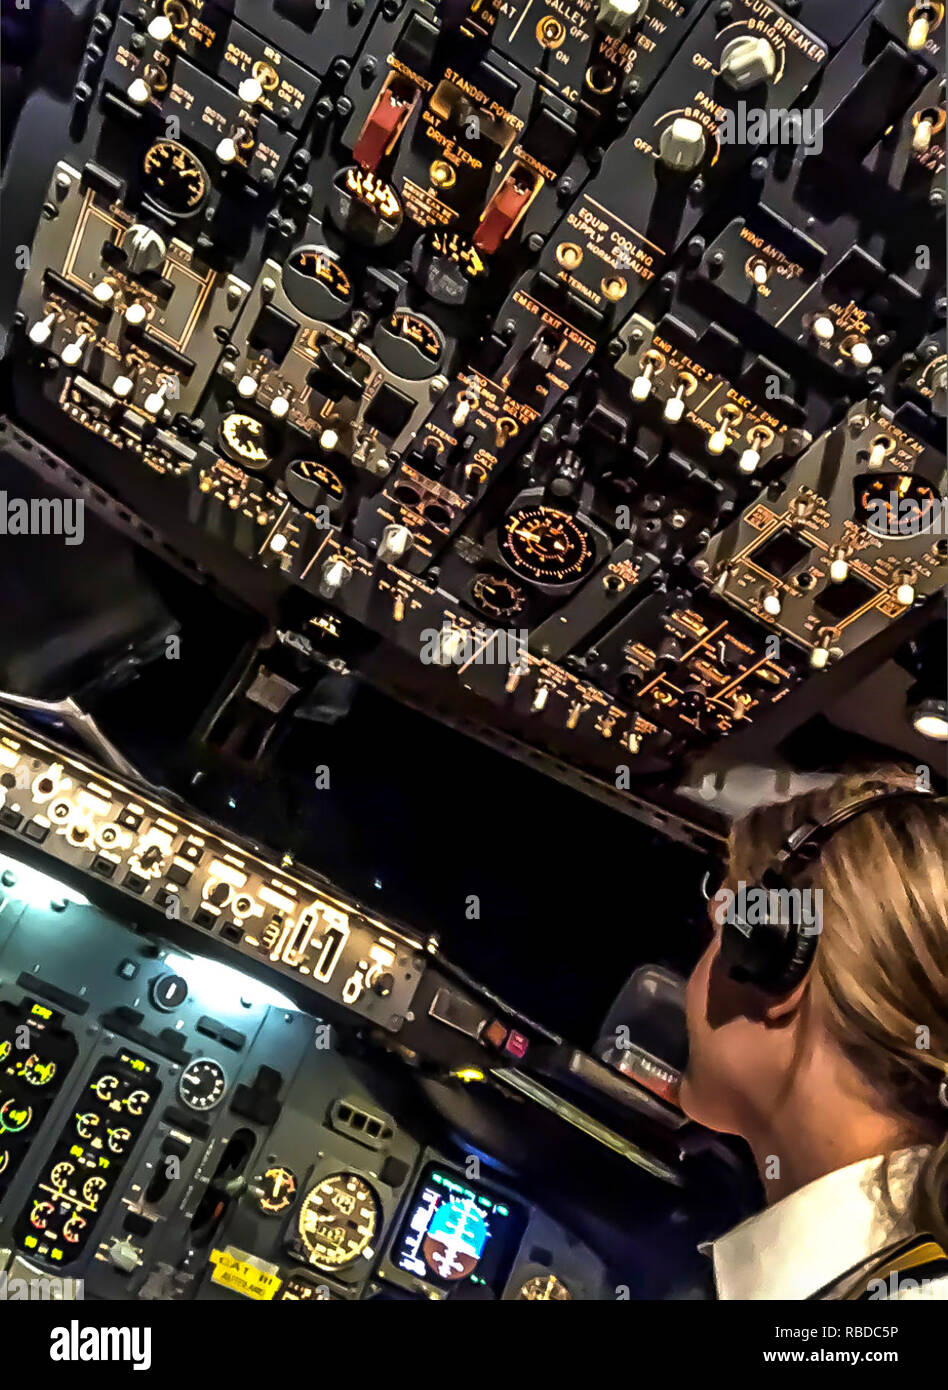 Flight deck. MEET the stunning pilot whose behind the scenes shots of her job and adventurous lifestyle have made her an Instagram star. First officer Sara Johansson (33), Borås, Sweden has amassed more than 22k followers on the social media site thanks to her incredible images. Striking shots show the beauty queen in her uniform at work in the cockpit or chilling on a plane wing while others show Sara on her days off exploring the exotic locations she gets to fly to. Sara has worked as a commercial pilot for two and a half years, flying both passengers and cargo on a Boeing 737 but is now fly Stock Photo